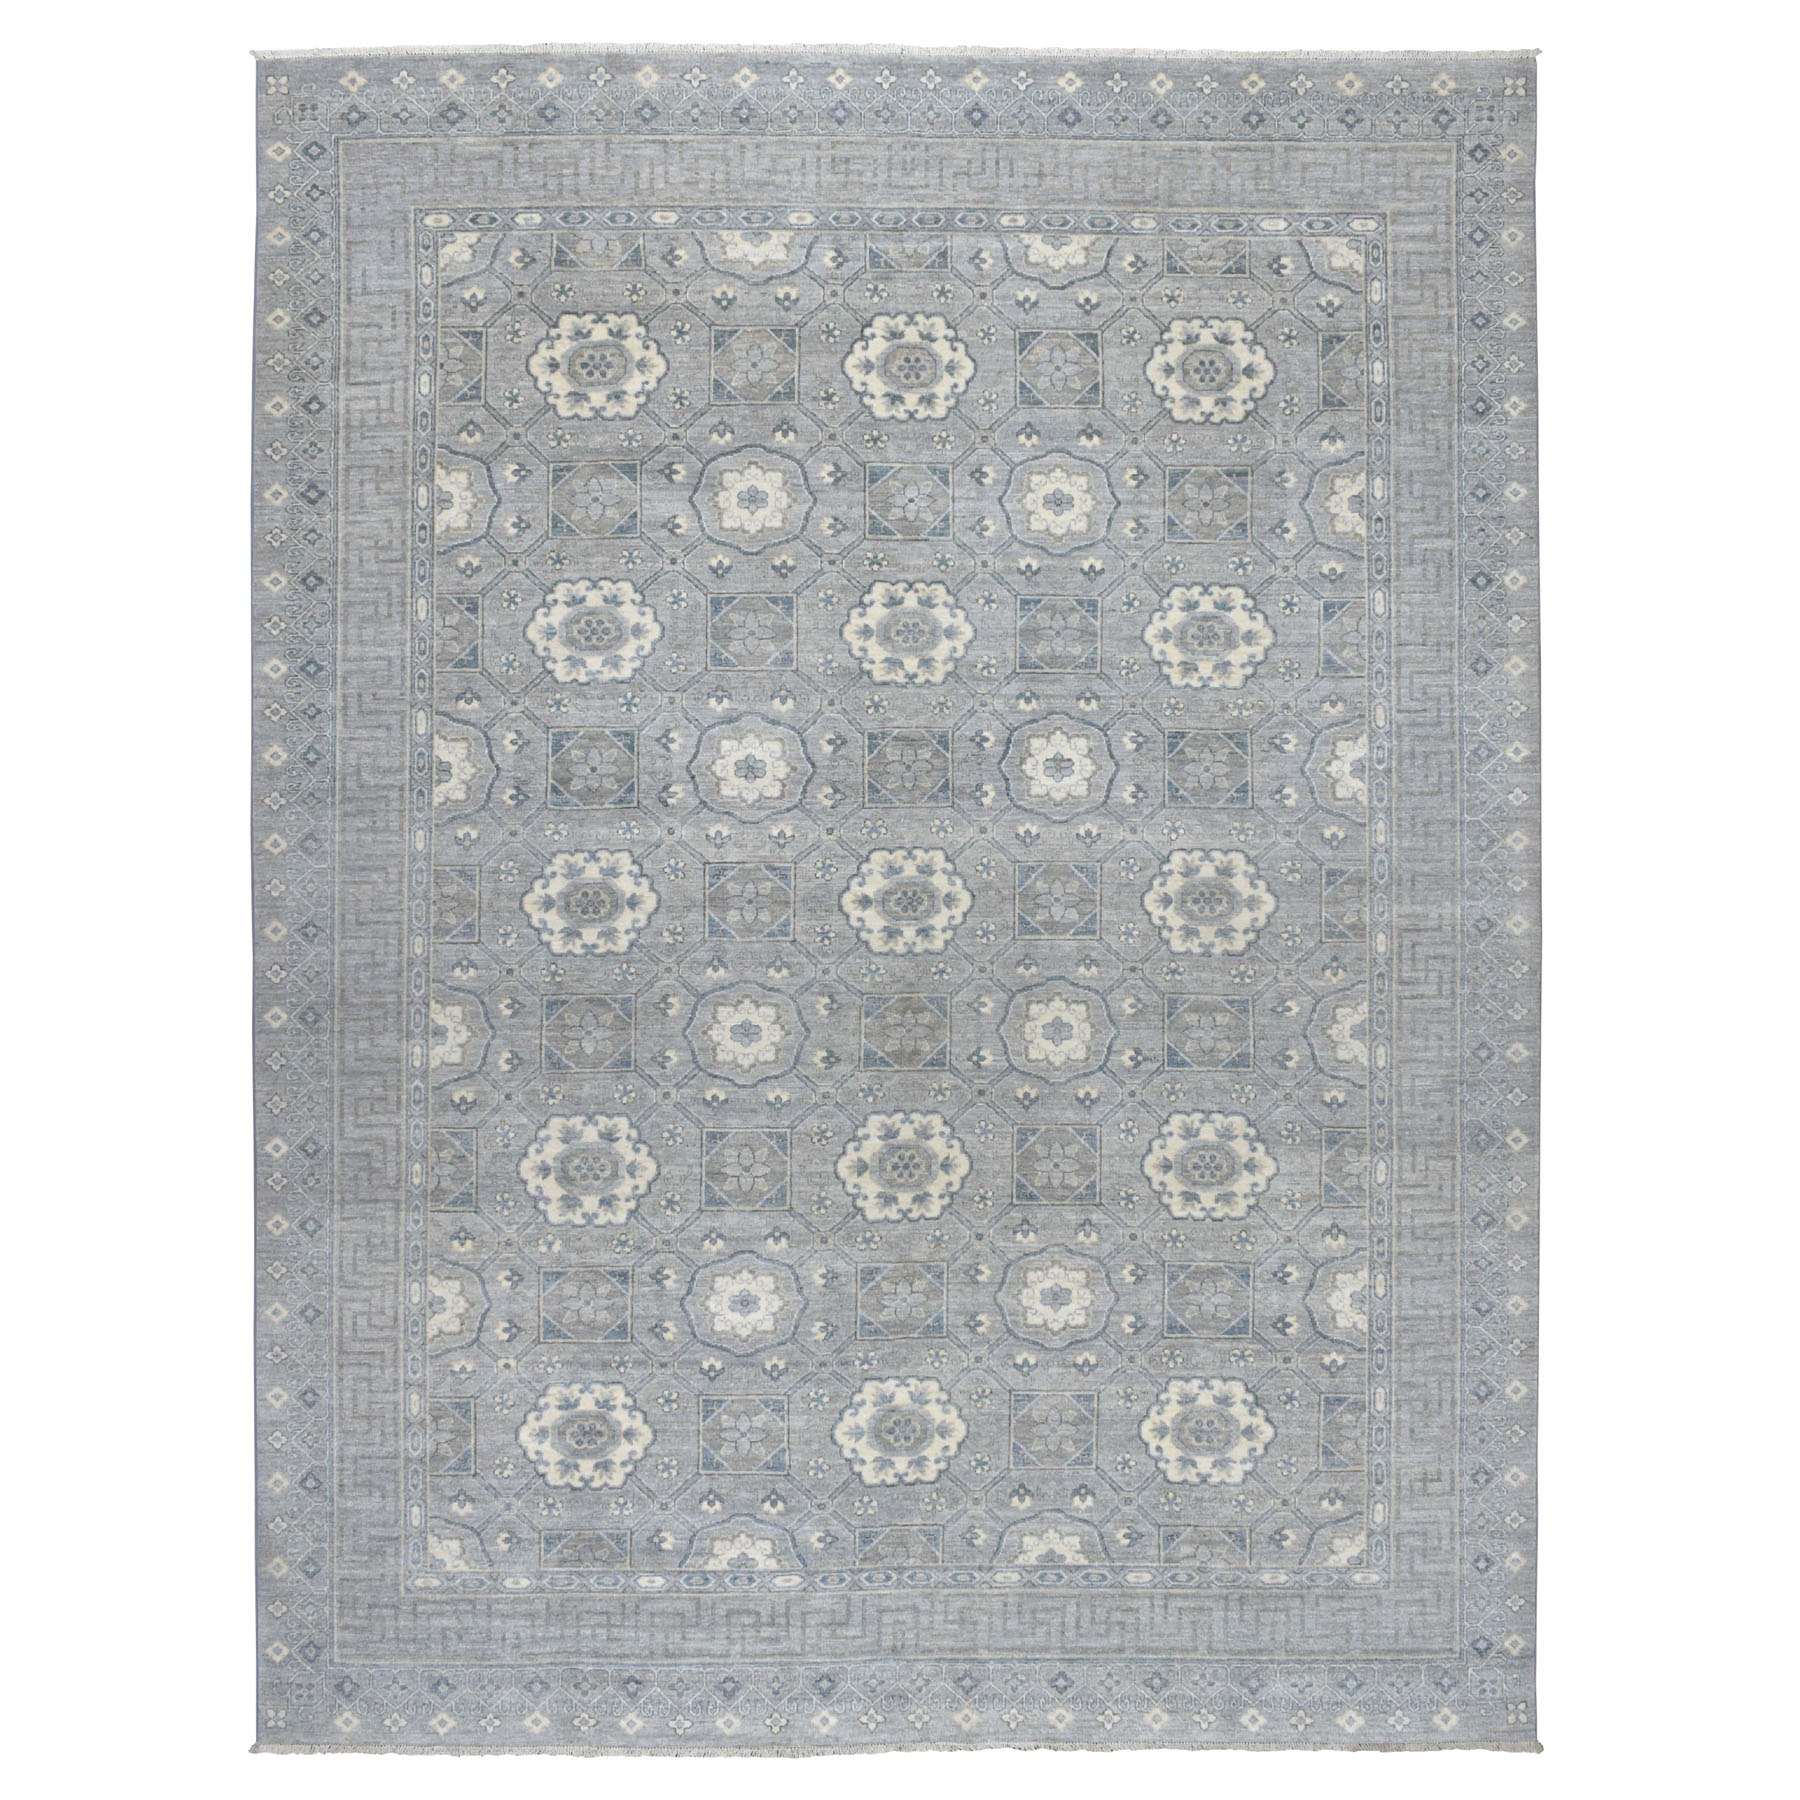 "9'x11'8"" Gray Peshawar with Khotan Design Pure Wool Hand Knotted Oriental Rug"